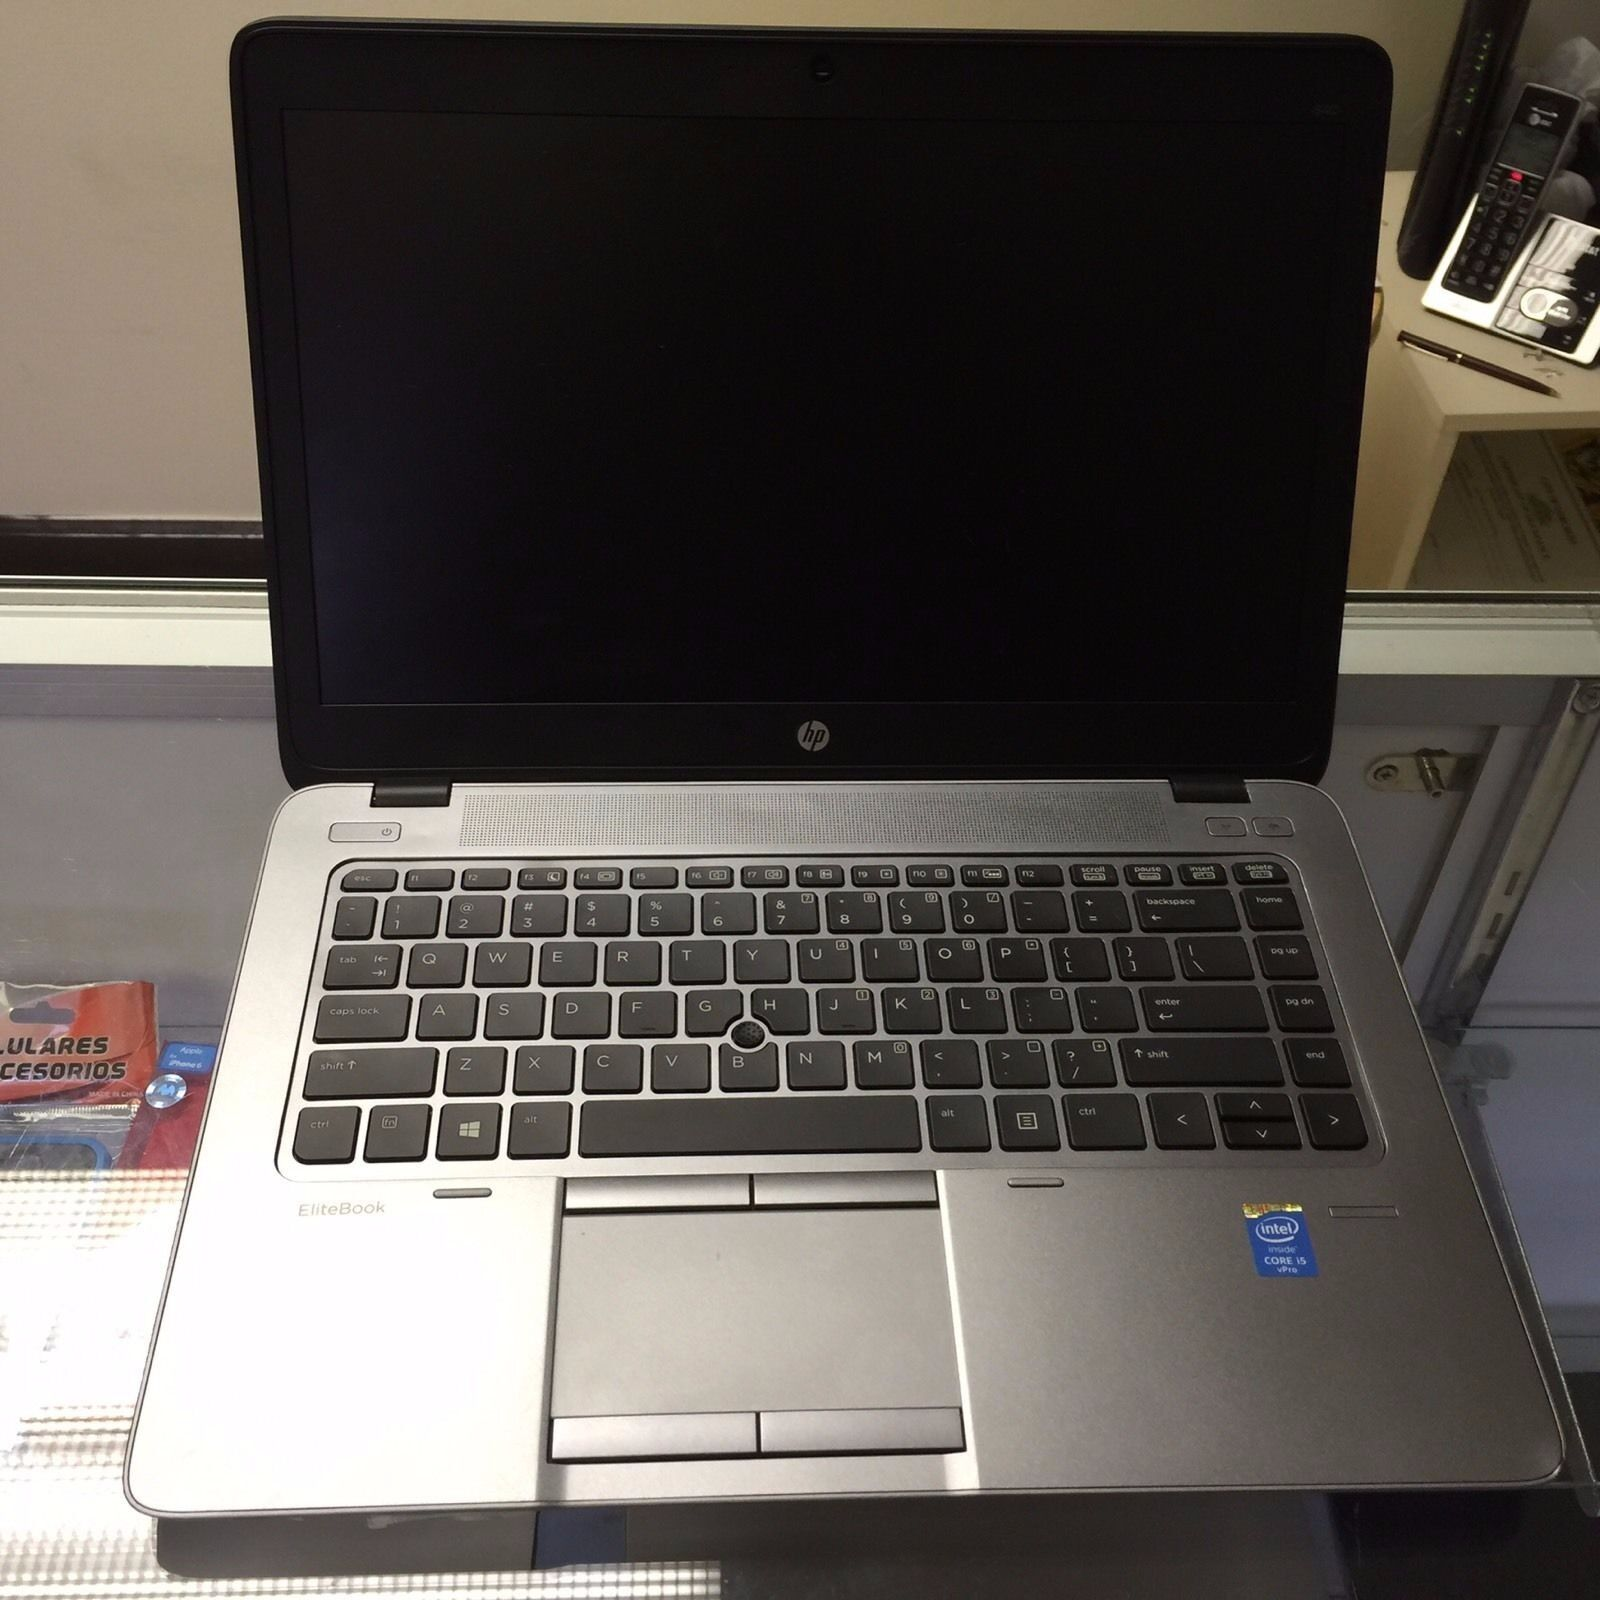 HP-Elitebook-840G2-Intel-Core-i5-5300-2-30GHz-8GB-RAM-128SSD-Windows-10  HP-Eli